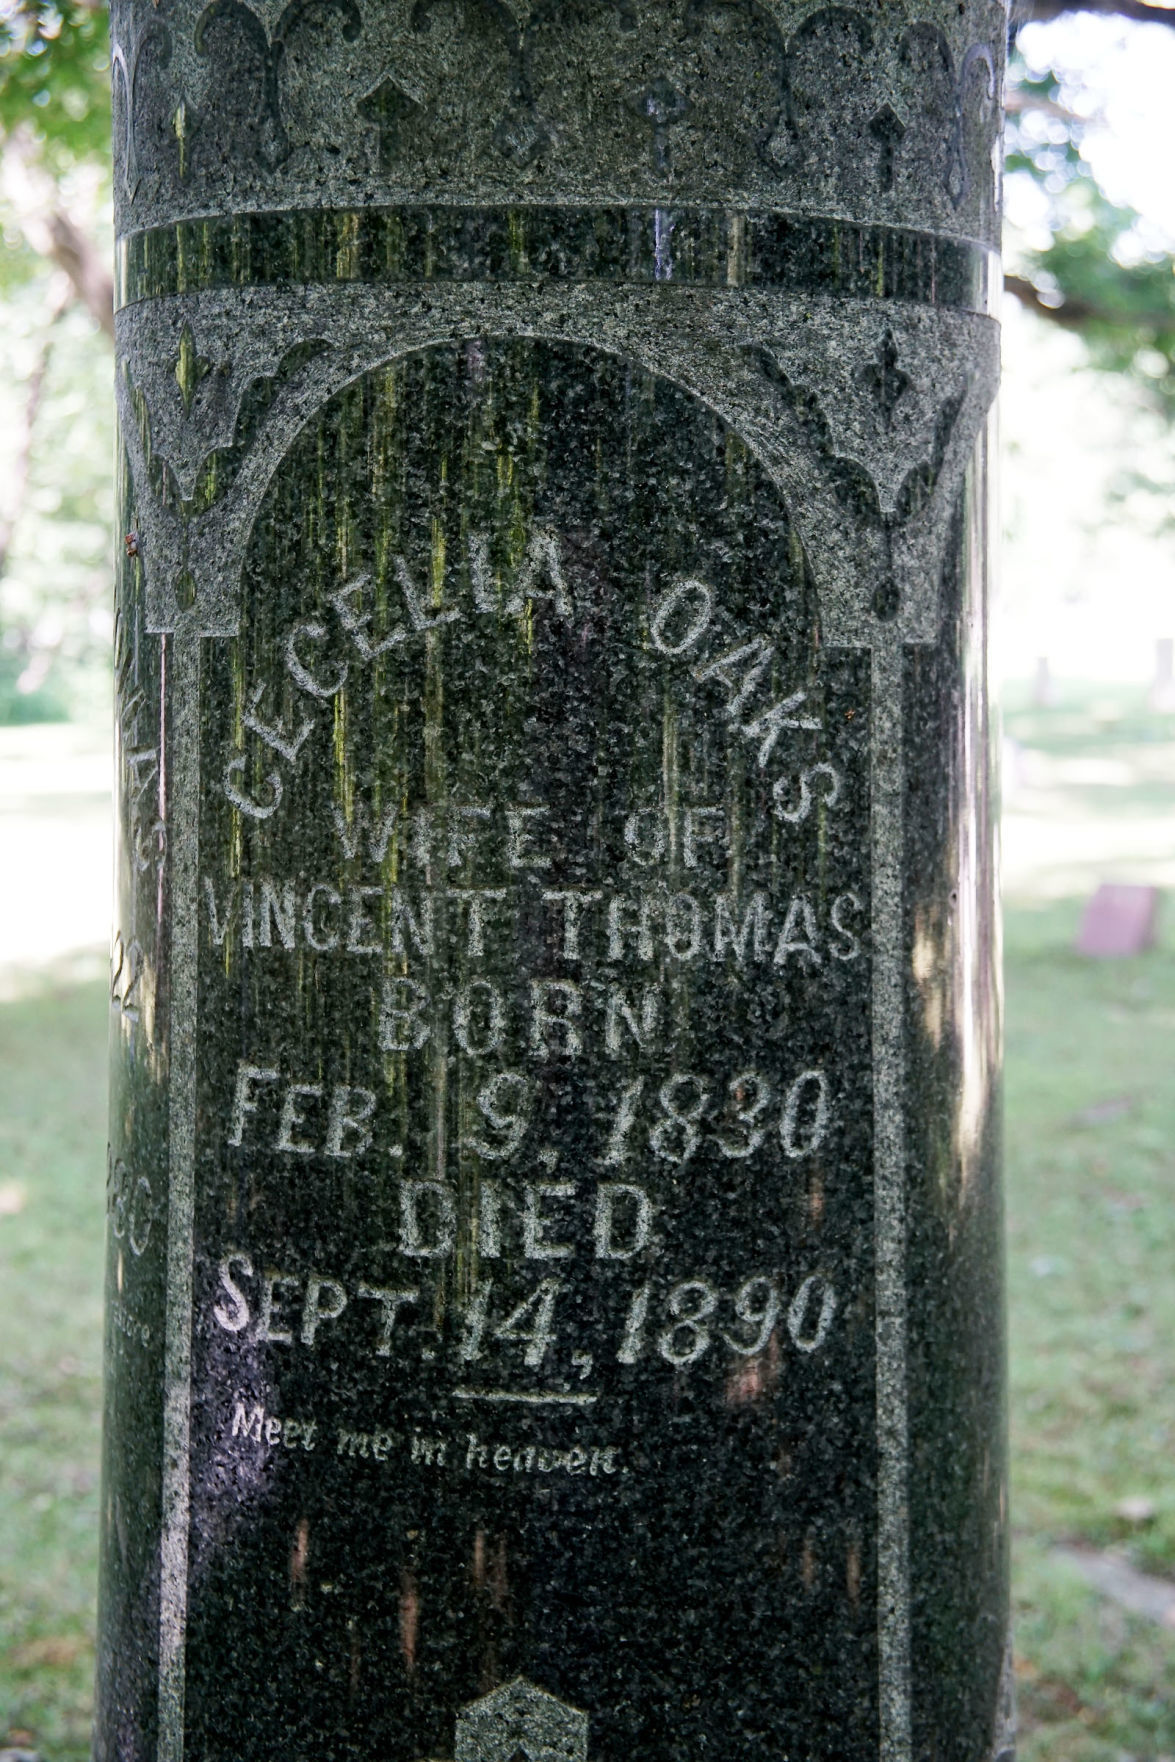 Cemetery tour explores the people who settled Duneland